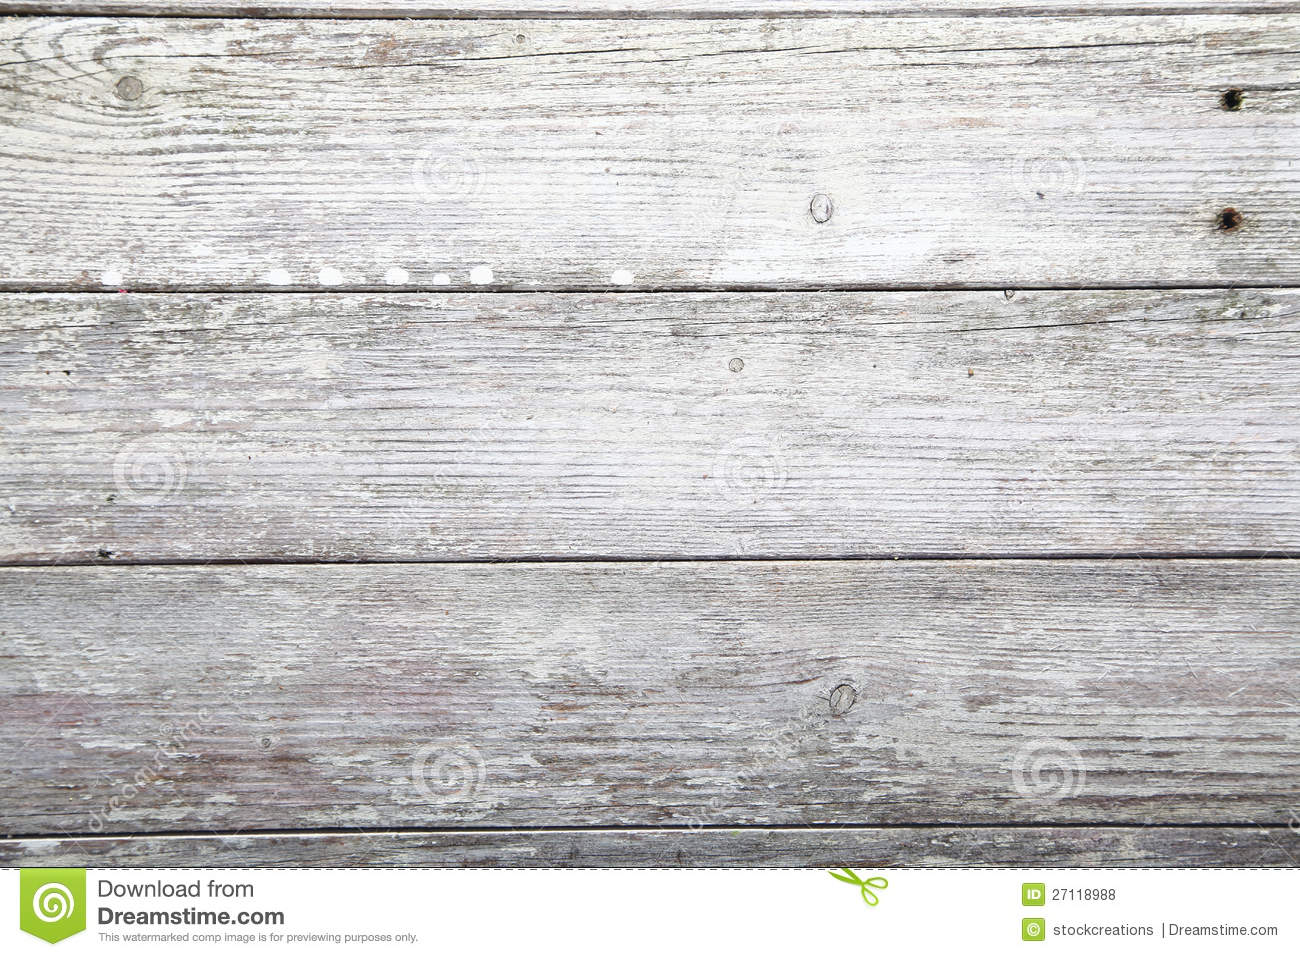 White wood texture ancient wood surface background pattern royalty - Weathered Wooden Plank Texture Royalty Free Stock Photos